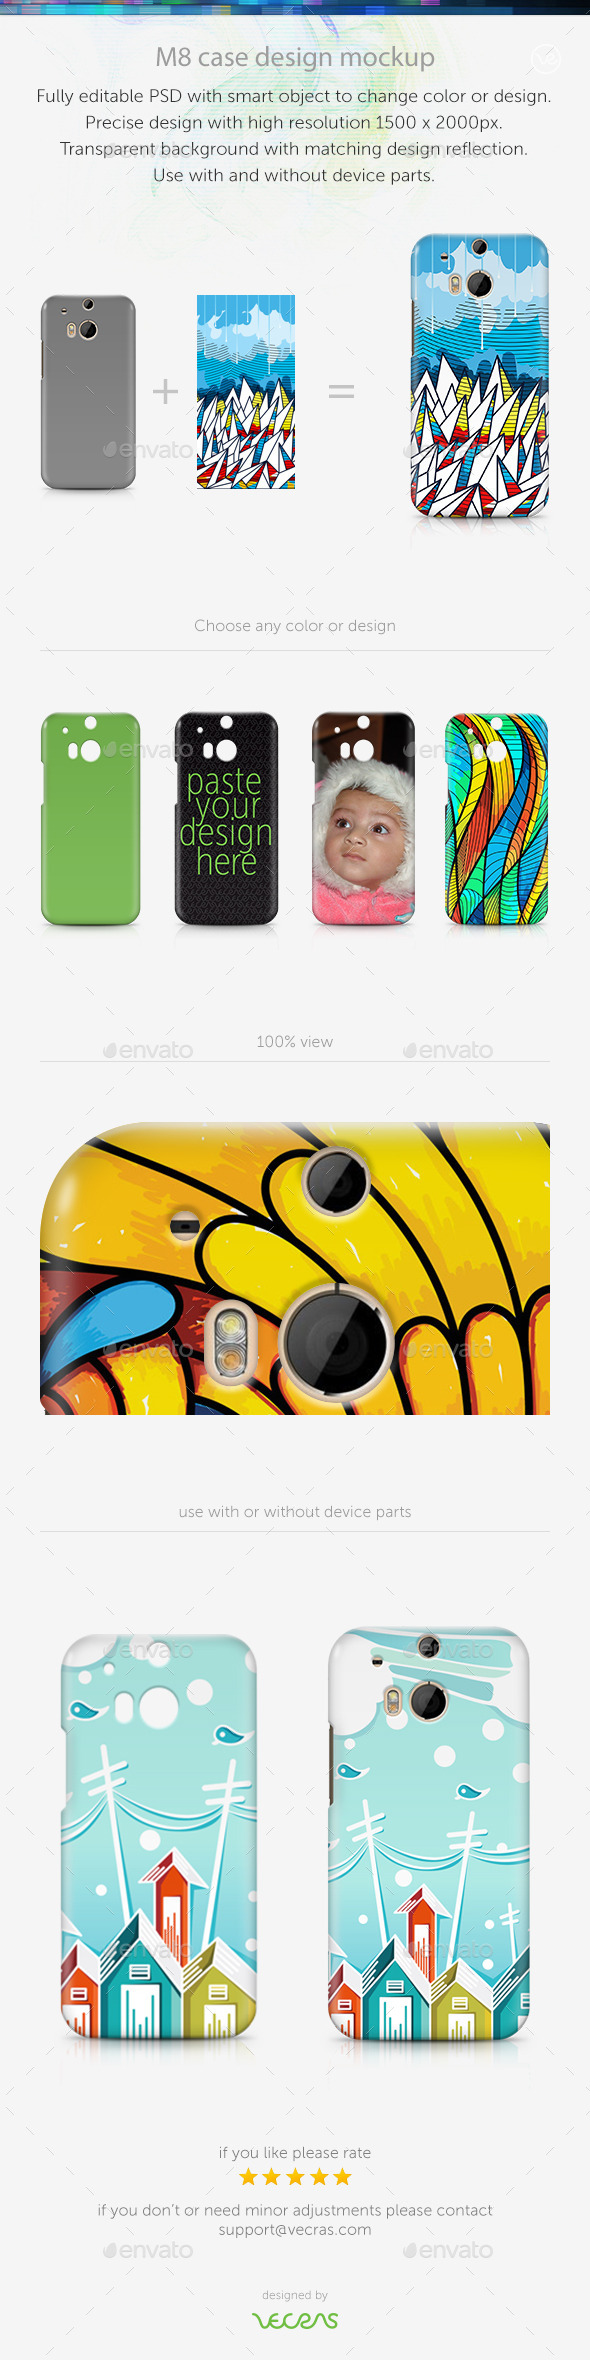 GraphicRiver M8 Case Design Mockup 9630272